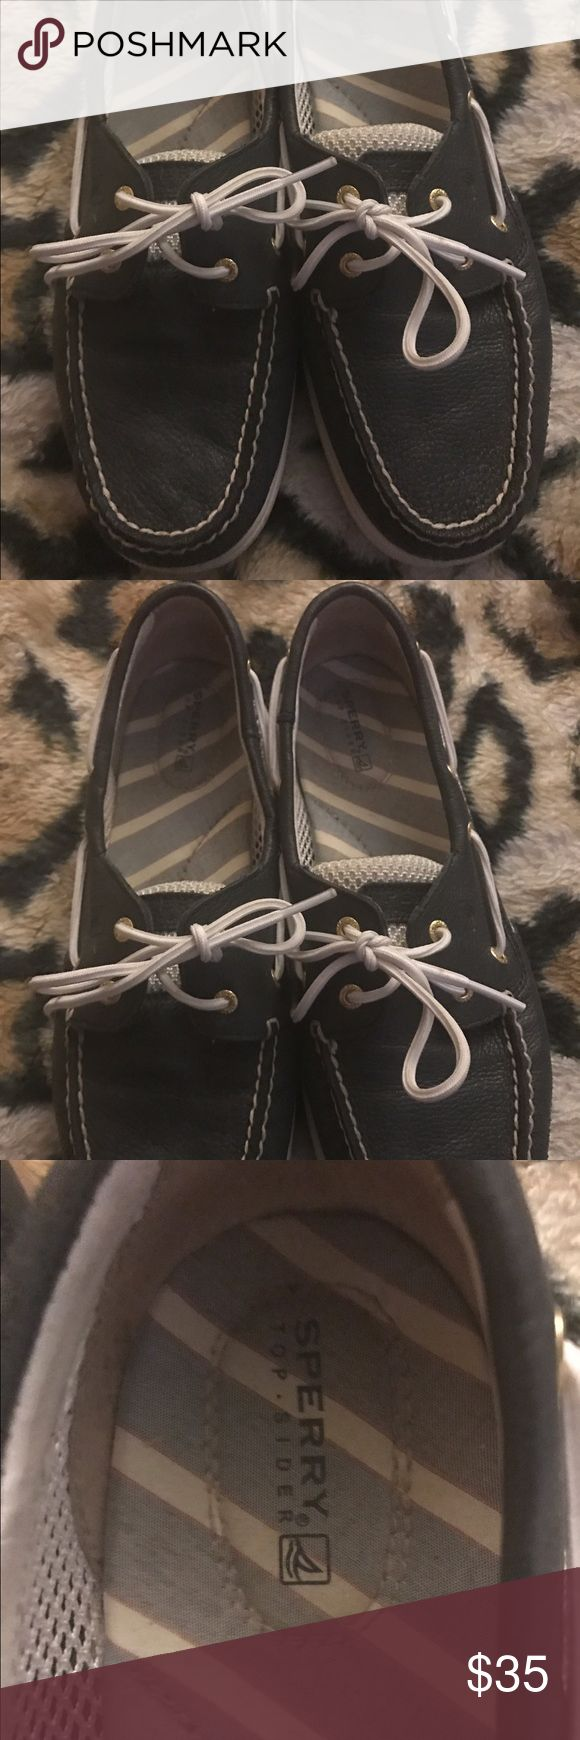 Women's Navy Blue and White Sperrys! Navy Bkue and white, genuine leather Sperrys, Gently used. Worn about two times. Very Comfortable. Great quality! Sperry Top-Sider Shoes Flats & Loafers